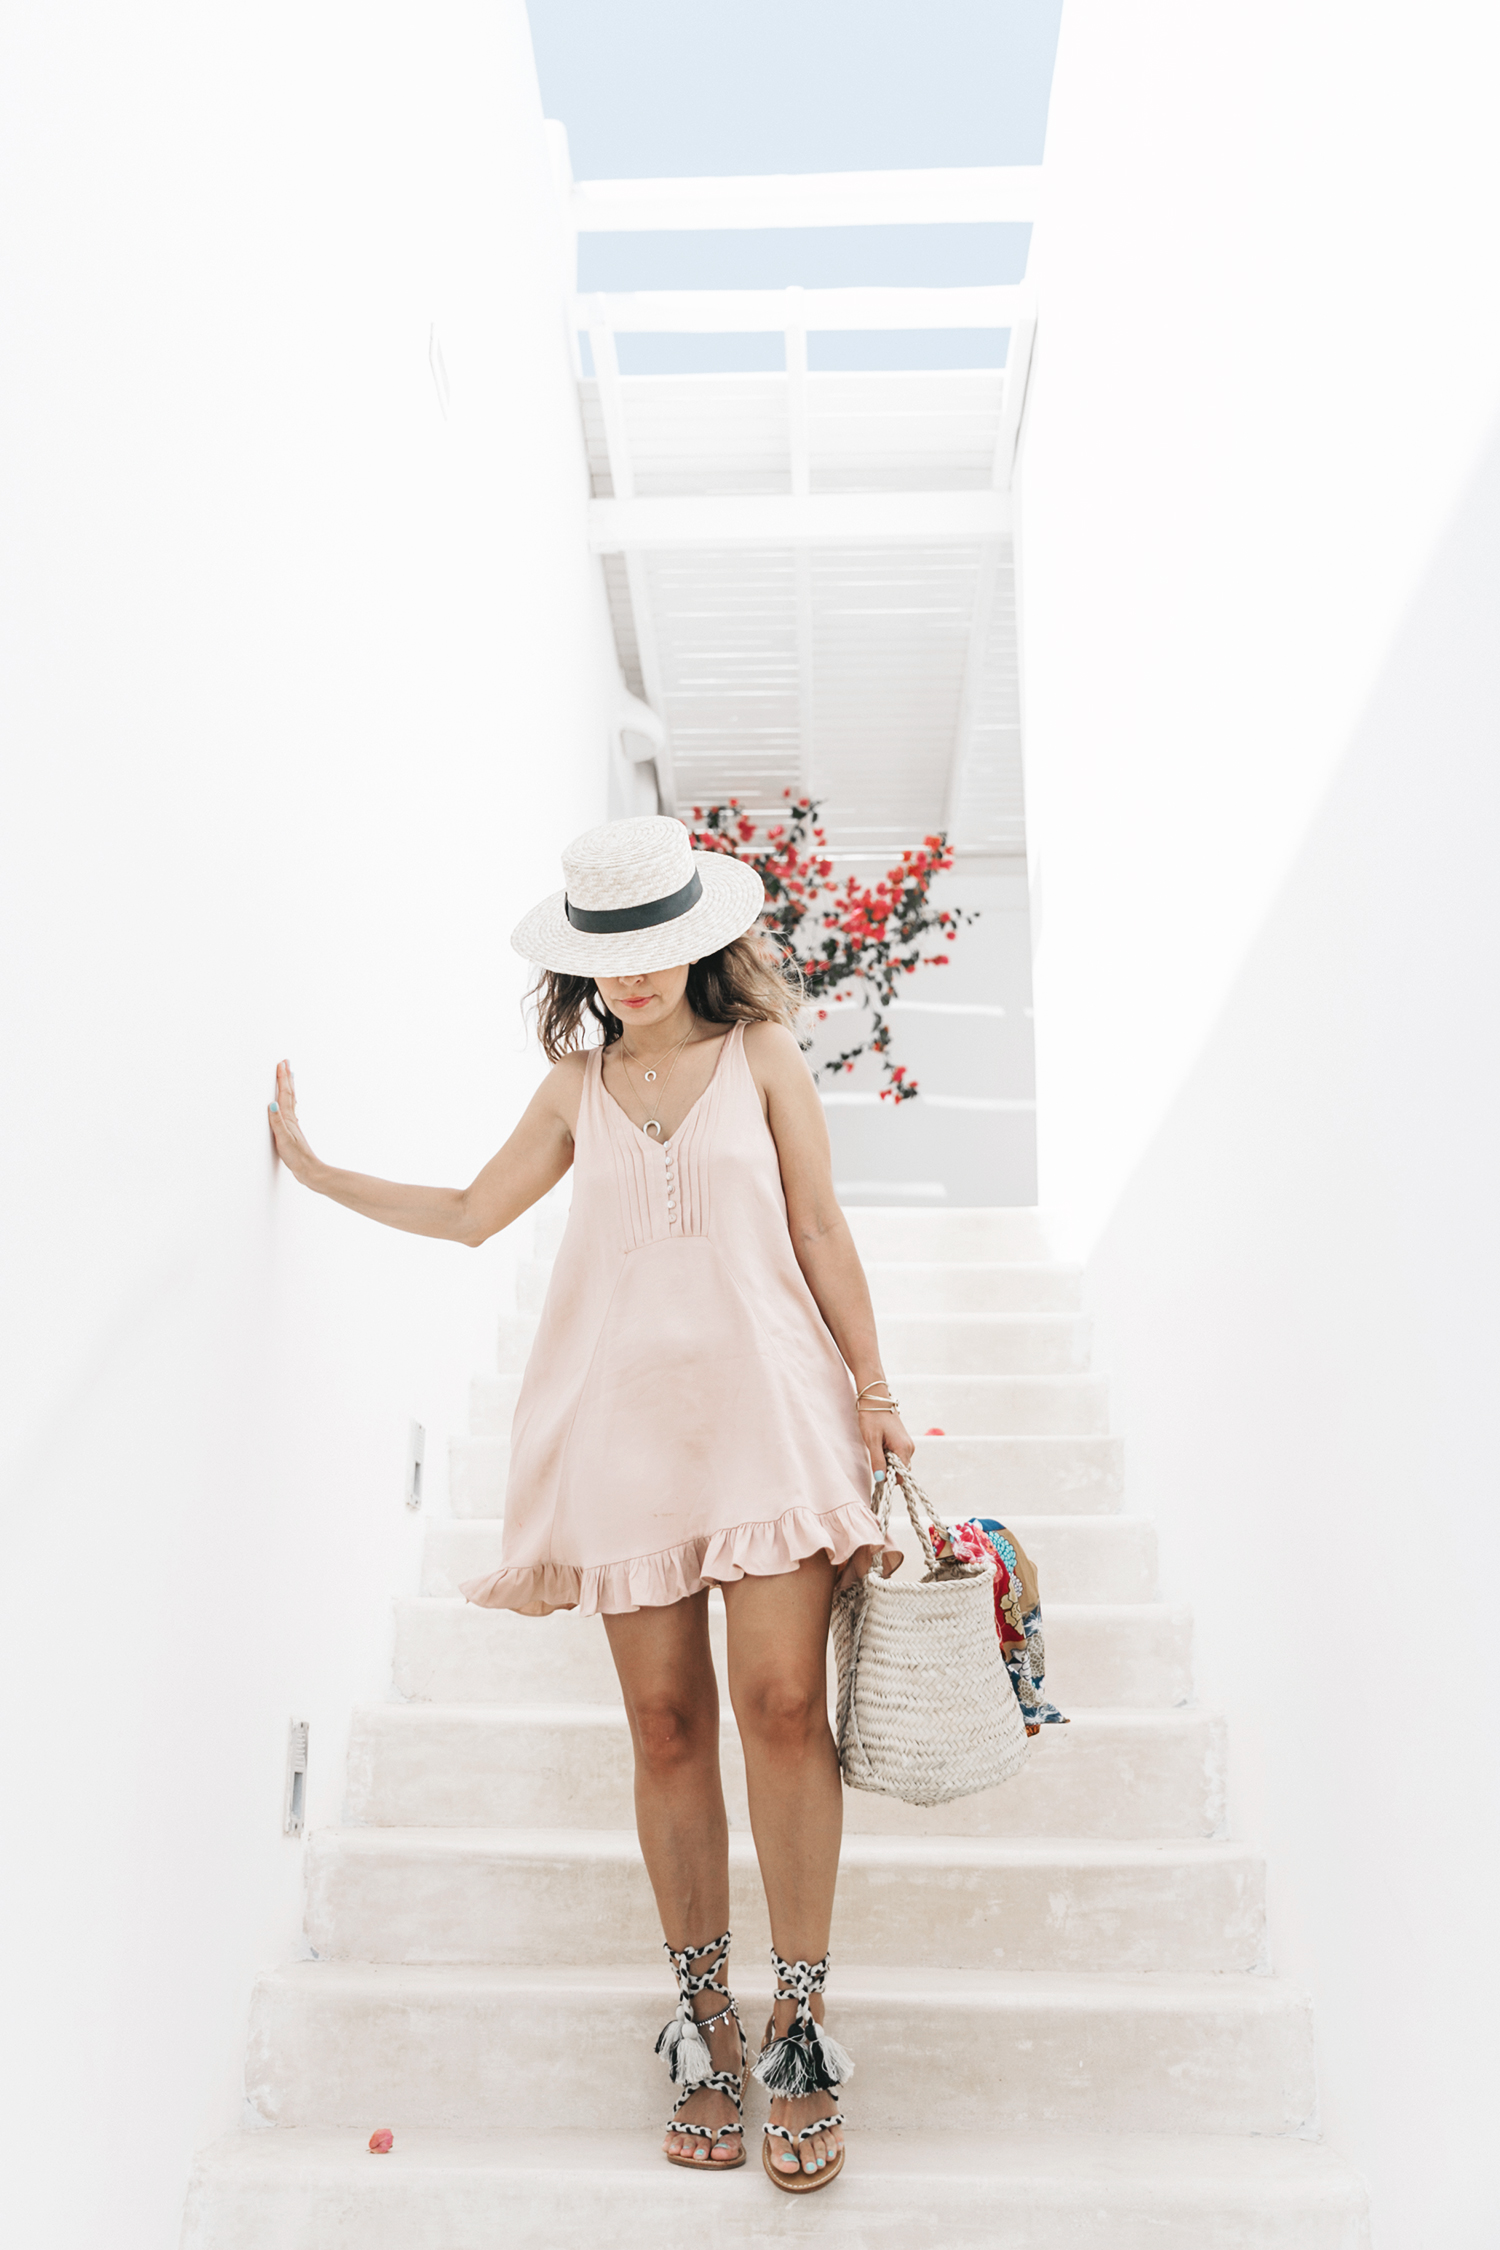 Soludos-Soludos_Escapes-Light_Pink_Dress-Knotted_Sandals-Mykonos-Greece-Collage_Vintage-Summer_Outfit-Street_Style-27